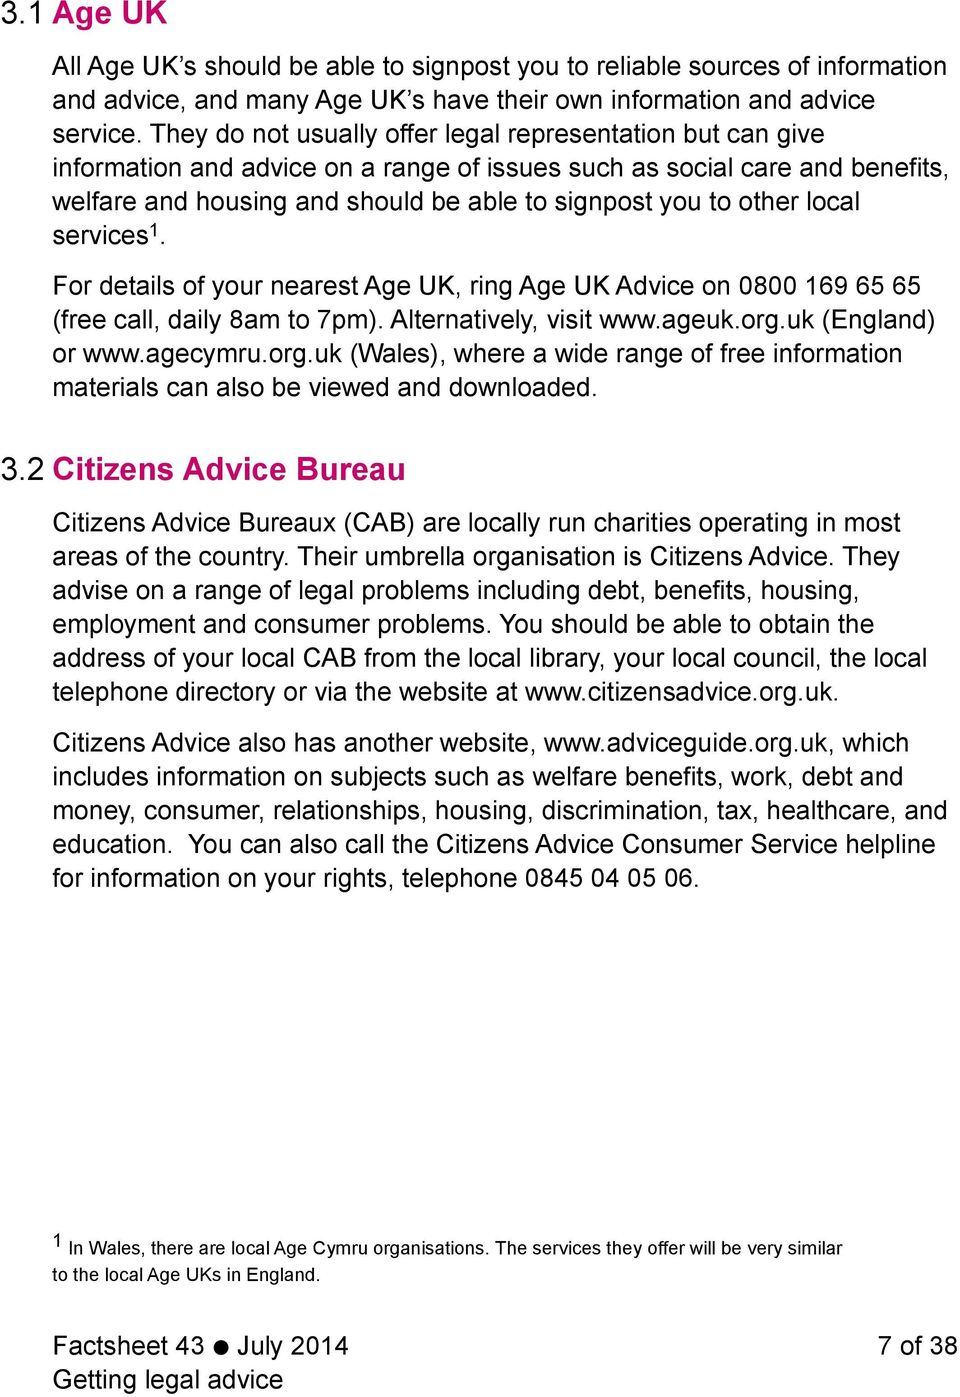 other local services 1. For details of your nearest Age UK, ring Age UK Advice on 0800 169 65 65 (free call, daily 8am to 7pm). Alternatively, visit www.ageuk.org.